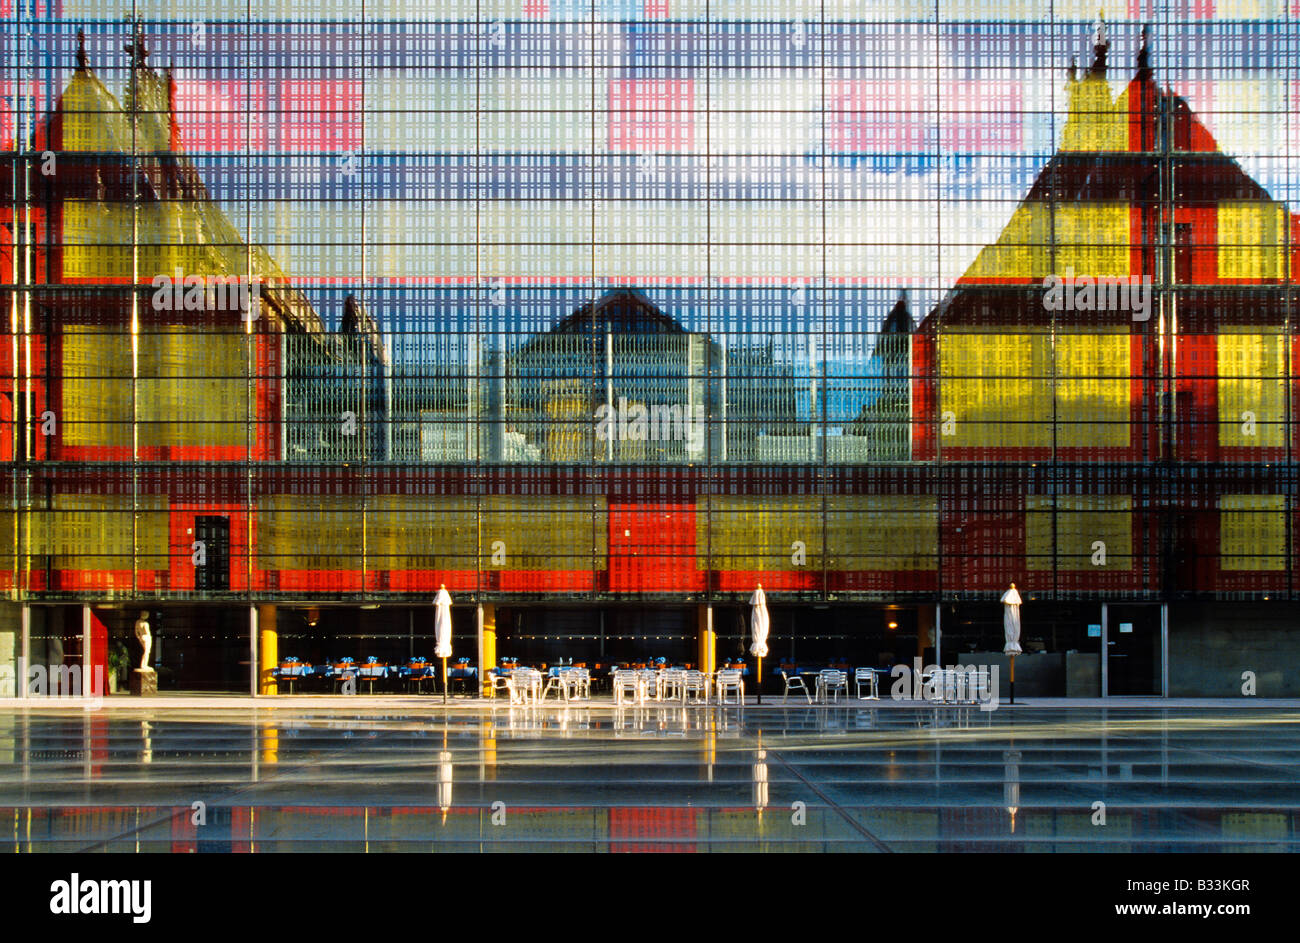 ART MUSEUM LILLE NORD FRANCE - Stock Image